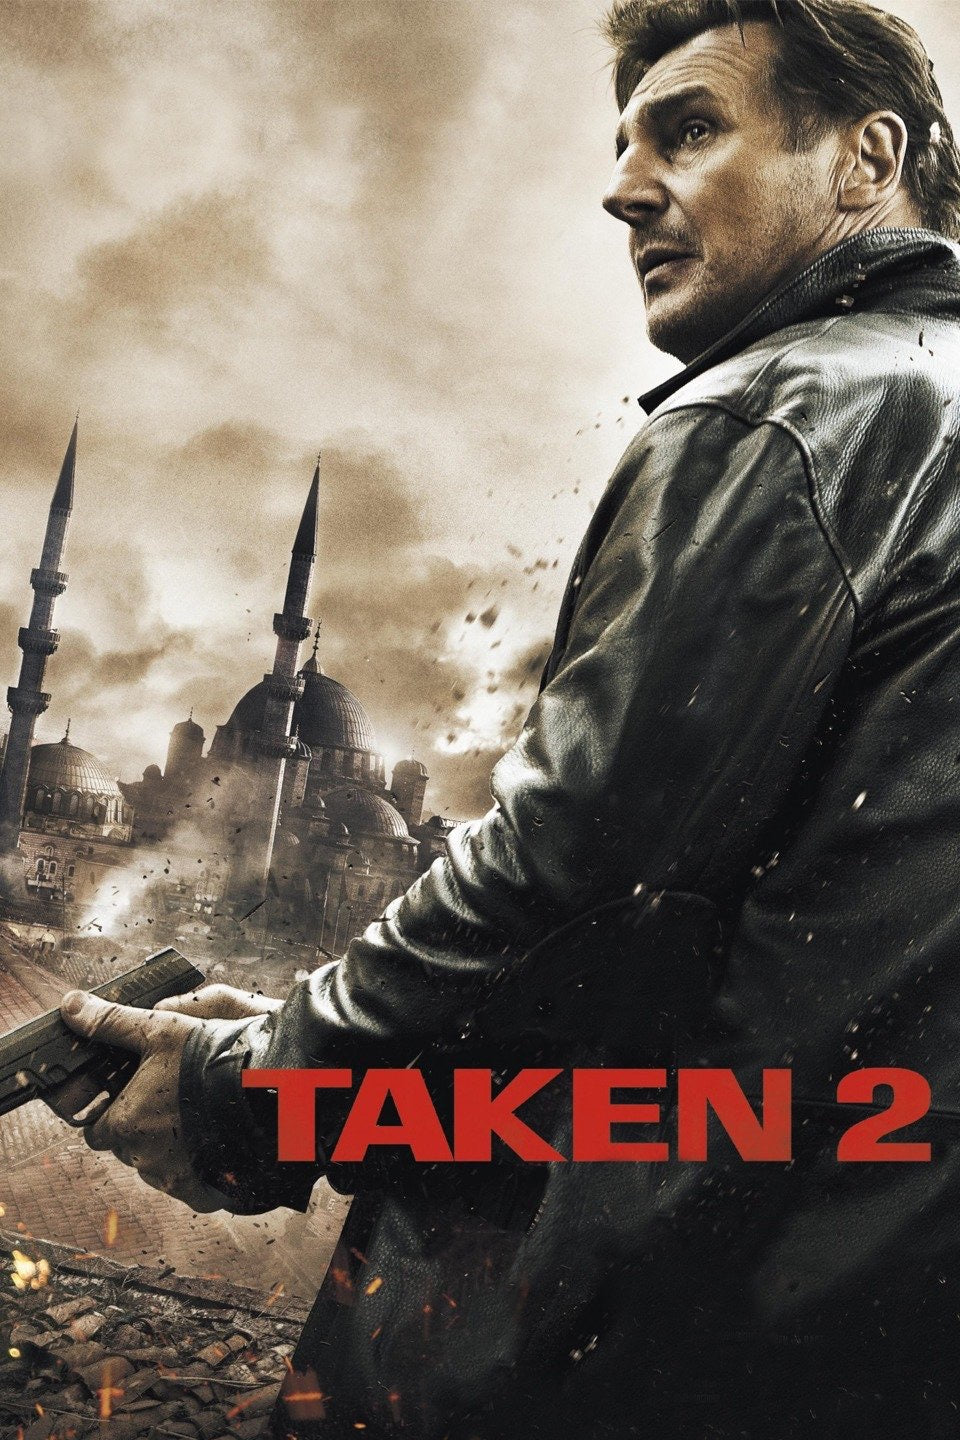 Taken 2 (2012) Vudu or Movies Anywhere HD code